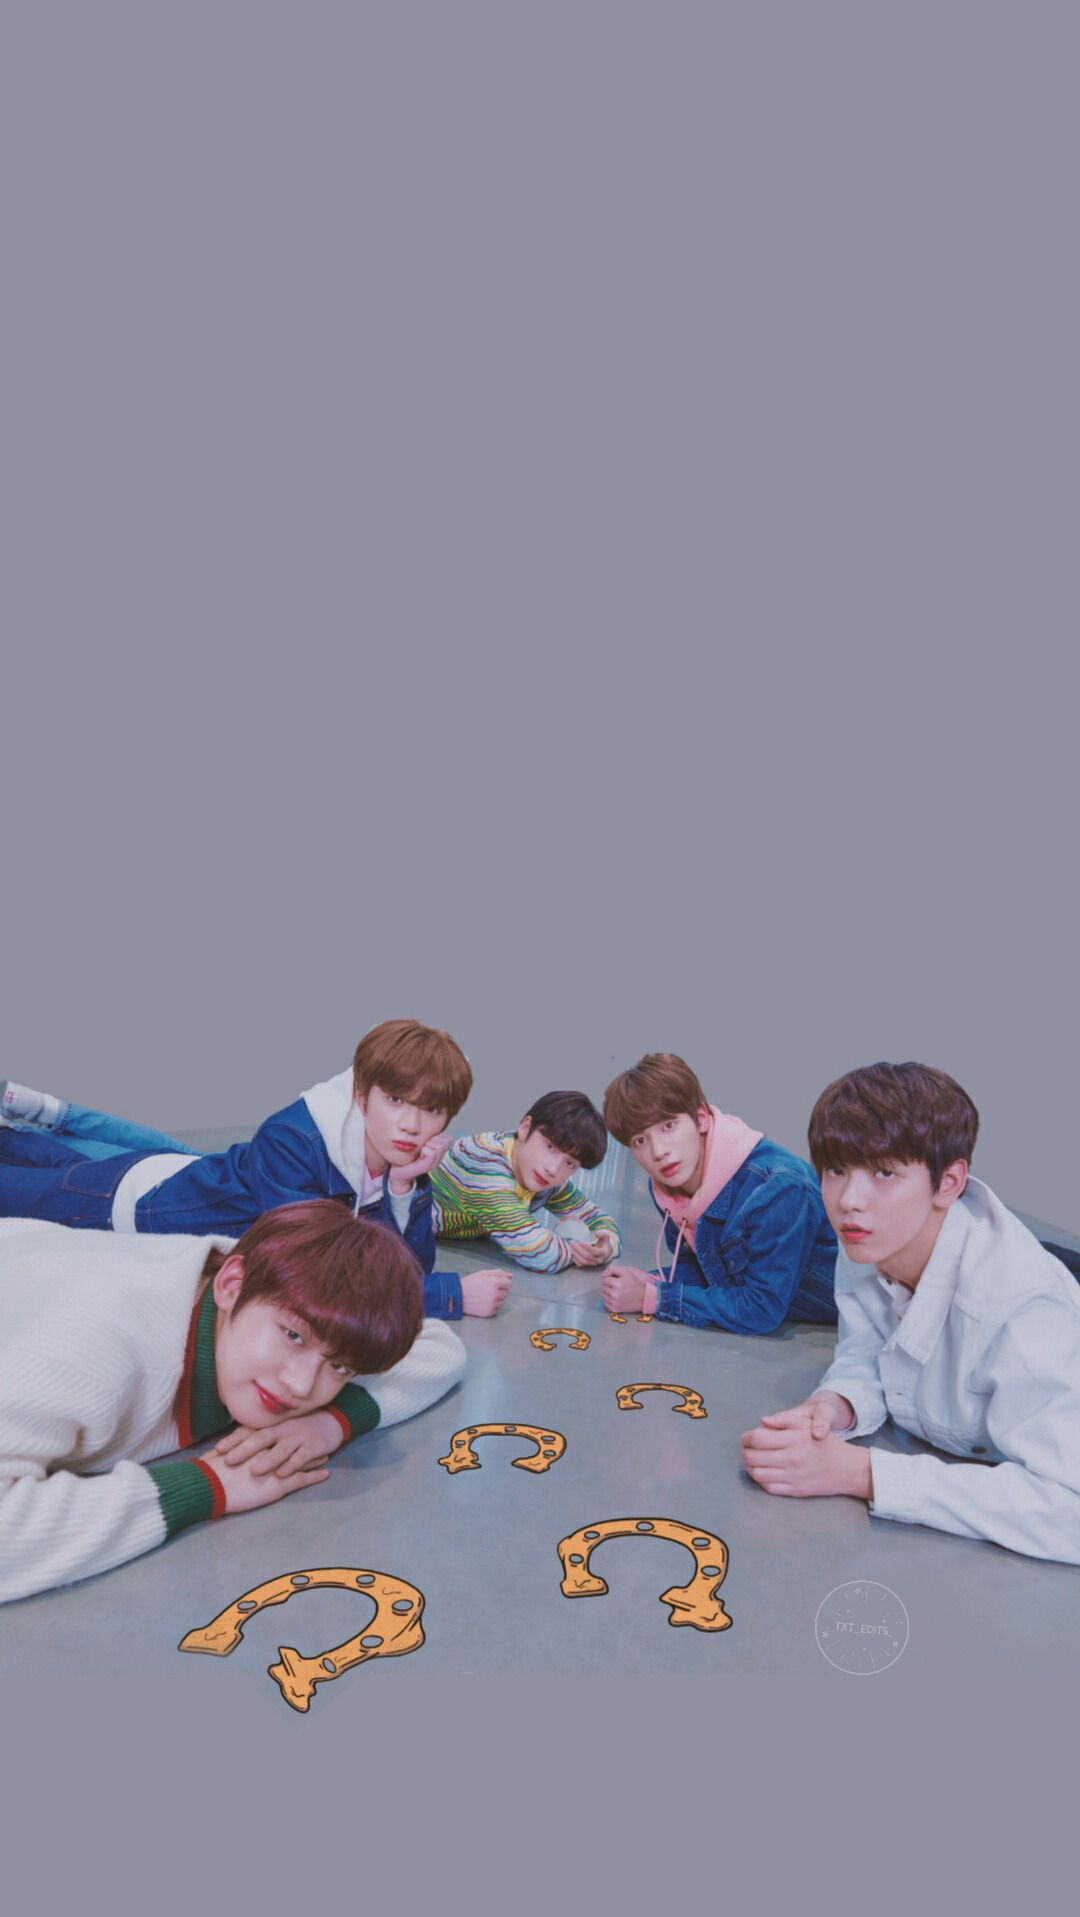 TXT wallpapers